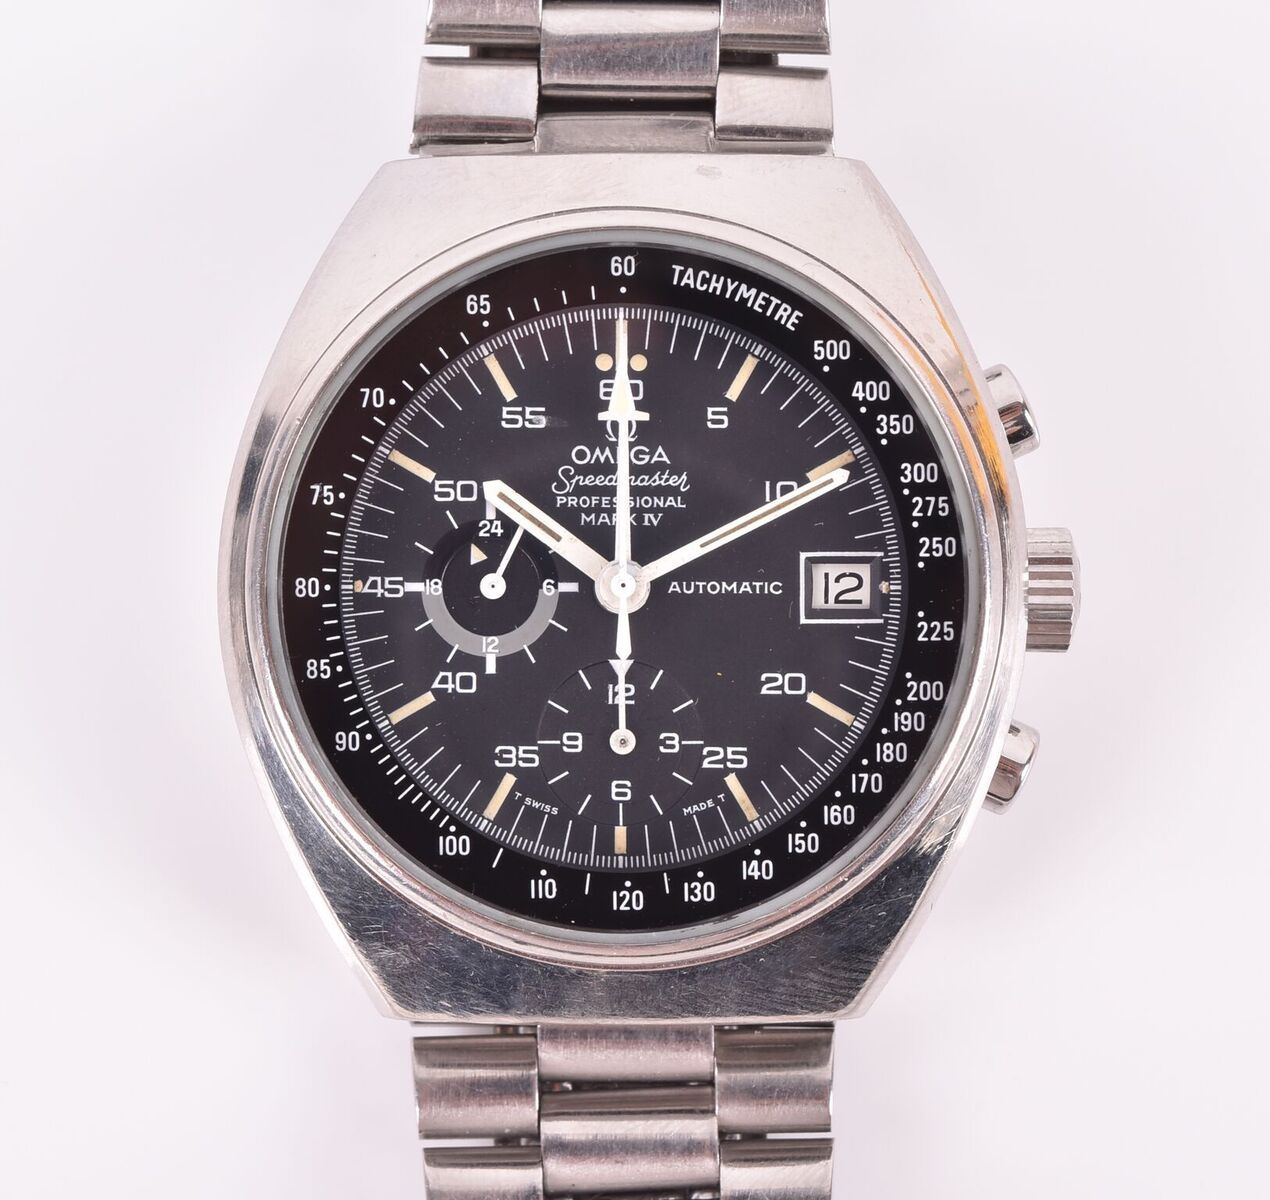 Lot 595: An Omega Speedmaster Professional Mark IV stainless steel automatic wristwatch